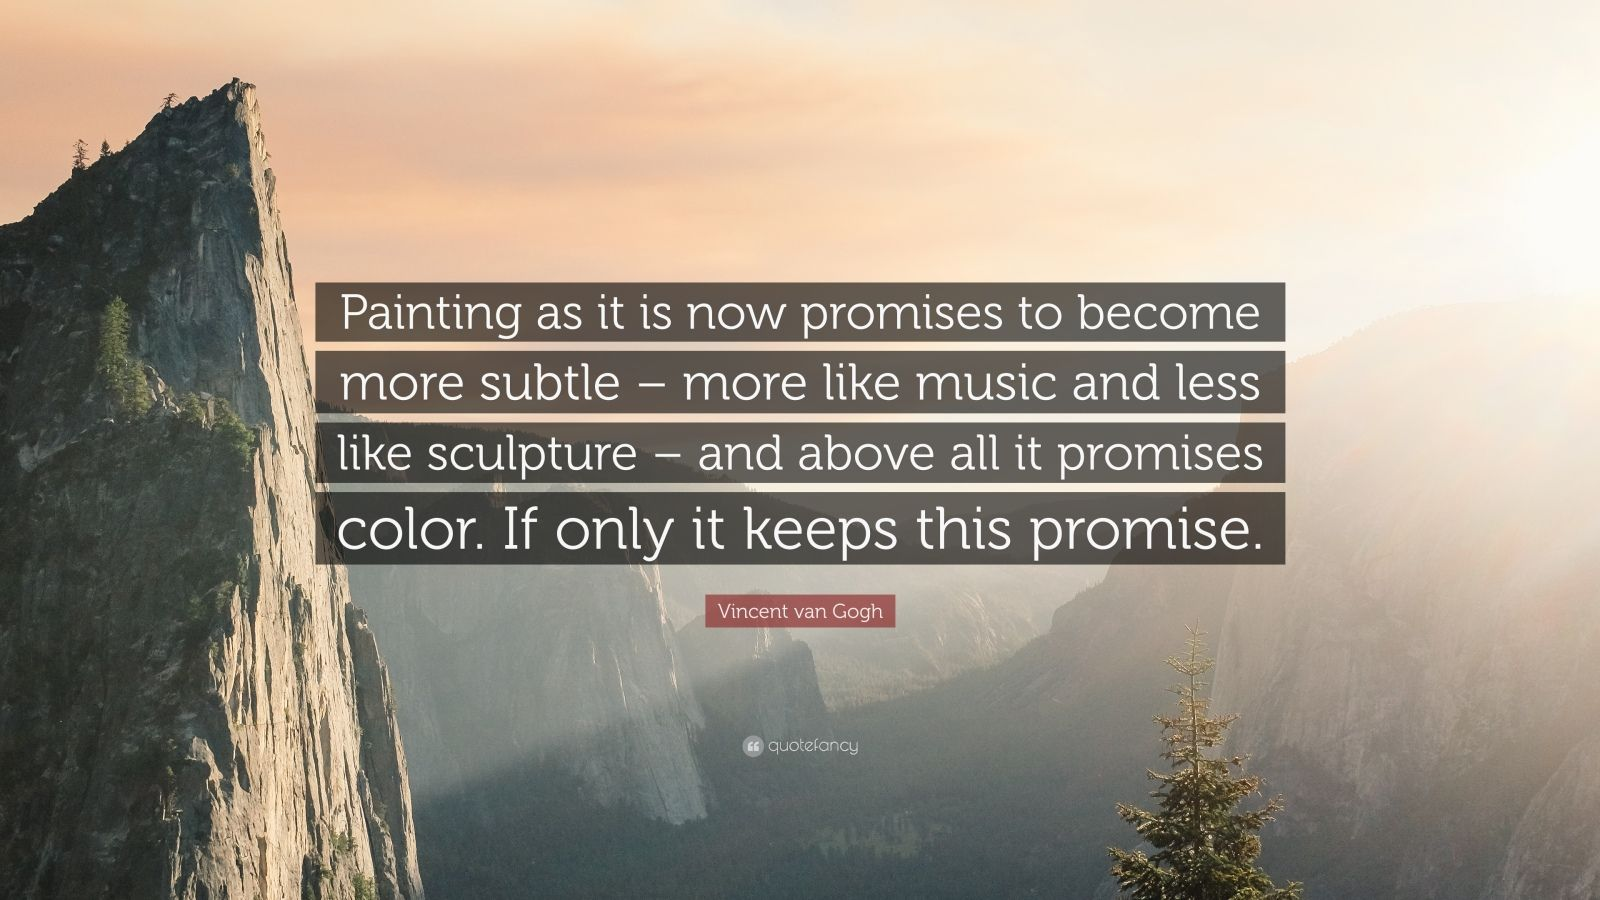 """Vincent van Gogh Quote: """"Painting as it is now promises to become more subtle – more like music and less like sculpture – and above all it promises color. If only it keeps this promise."""""""